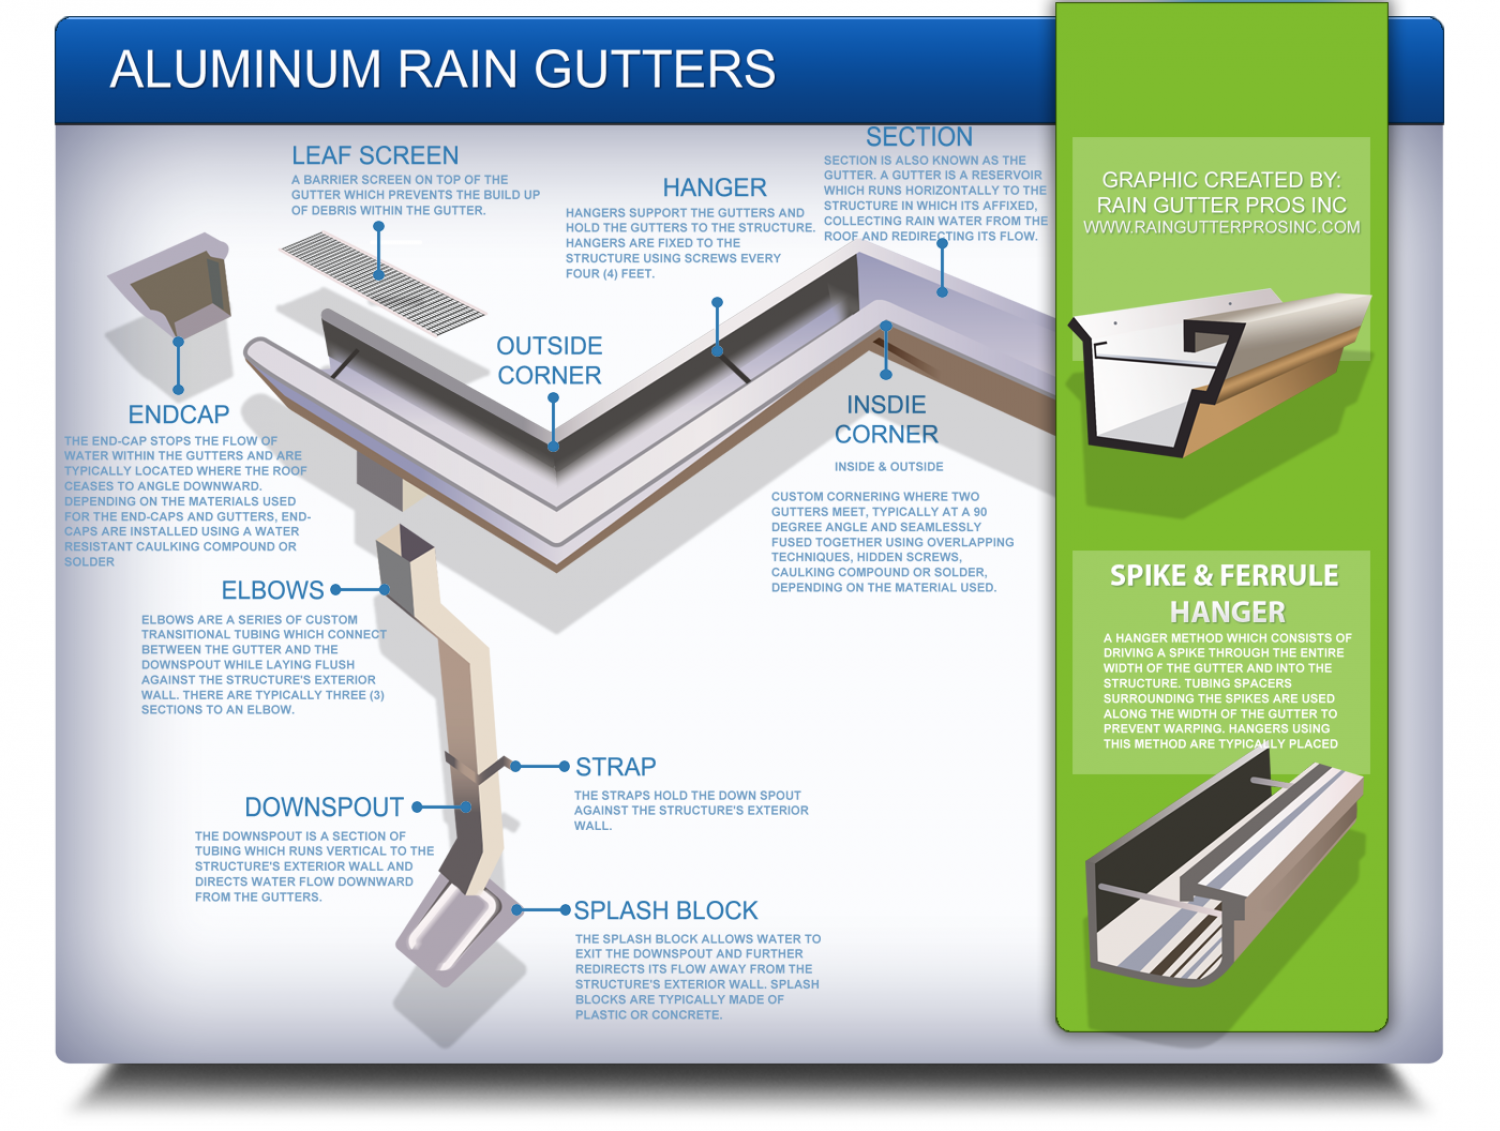 Aluminum Rain Gutter Infographic Visual Ly